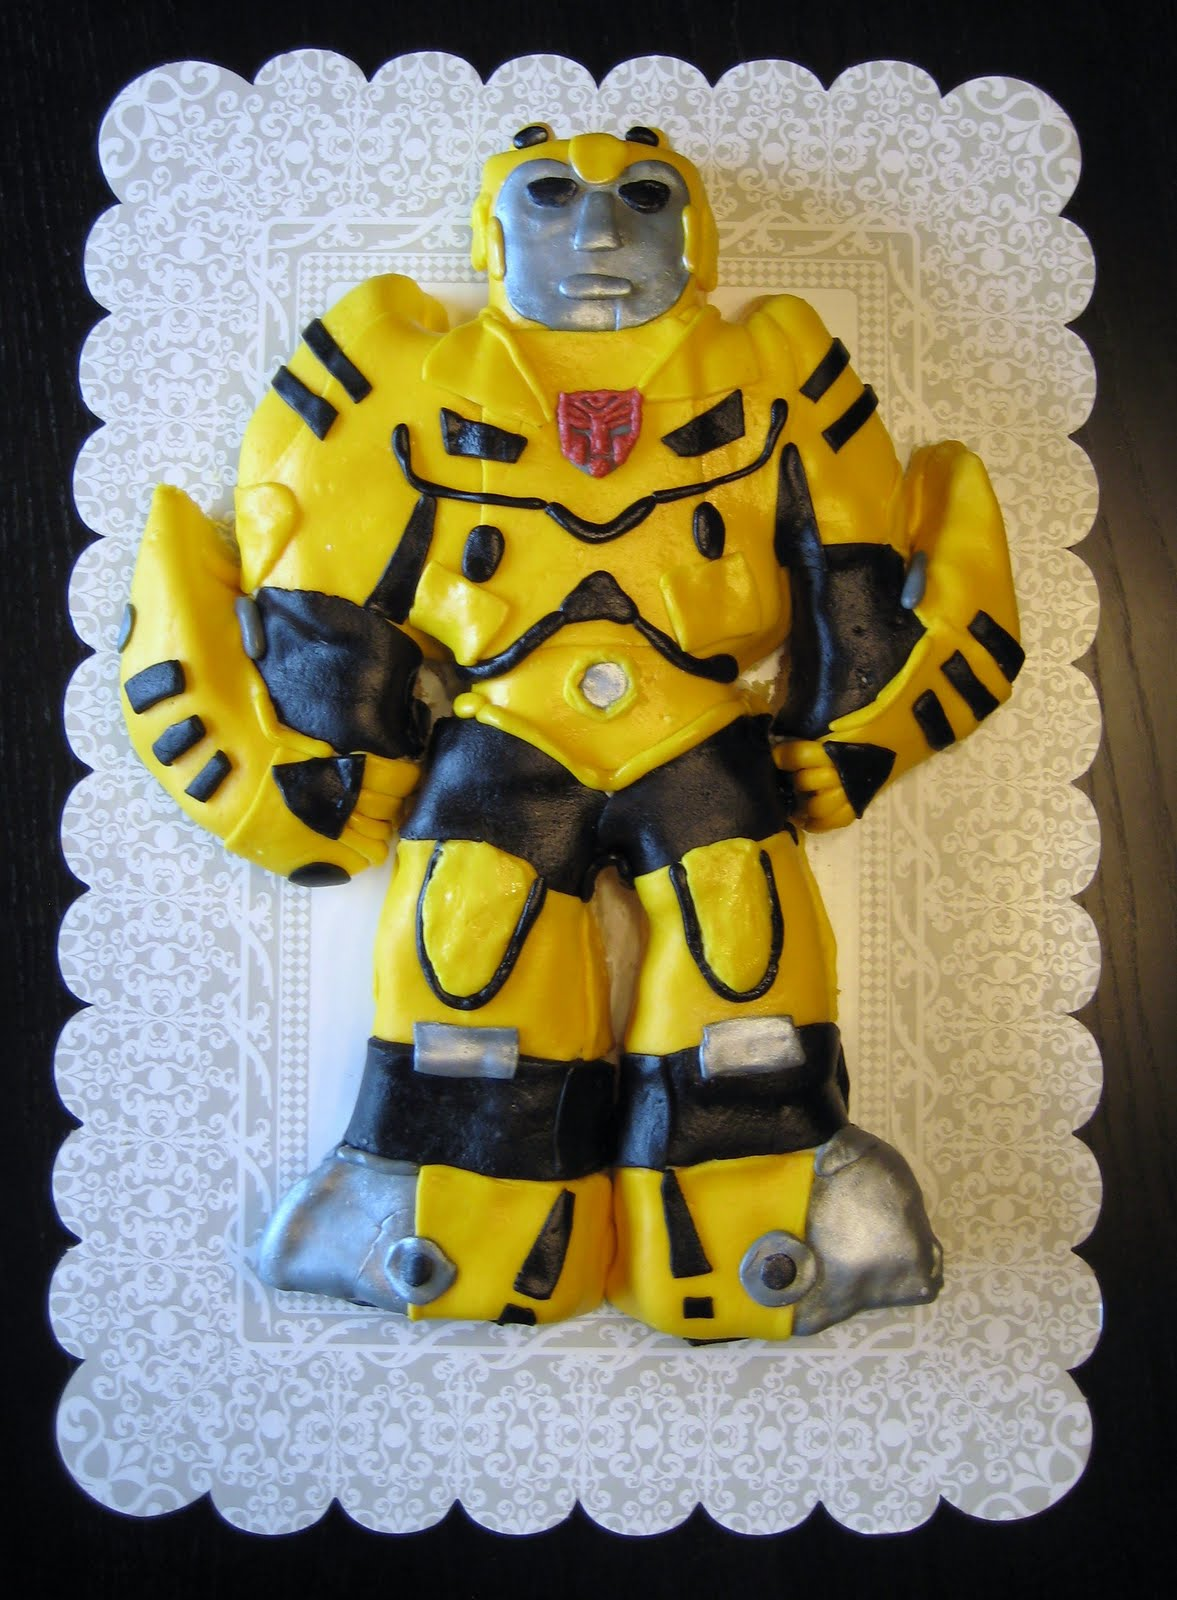 Groovy Transformer Cakes Decoration Ideas Little Birthday Cakes Funny Birthday Cards Online Inifofree Goldxyz